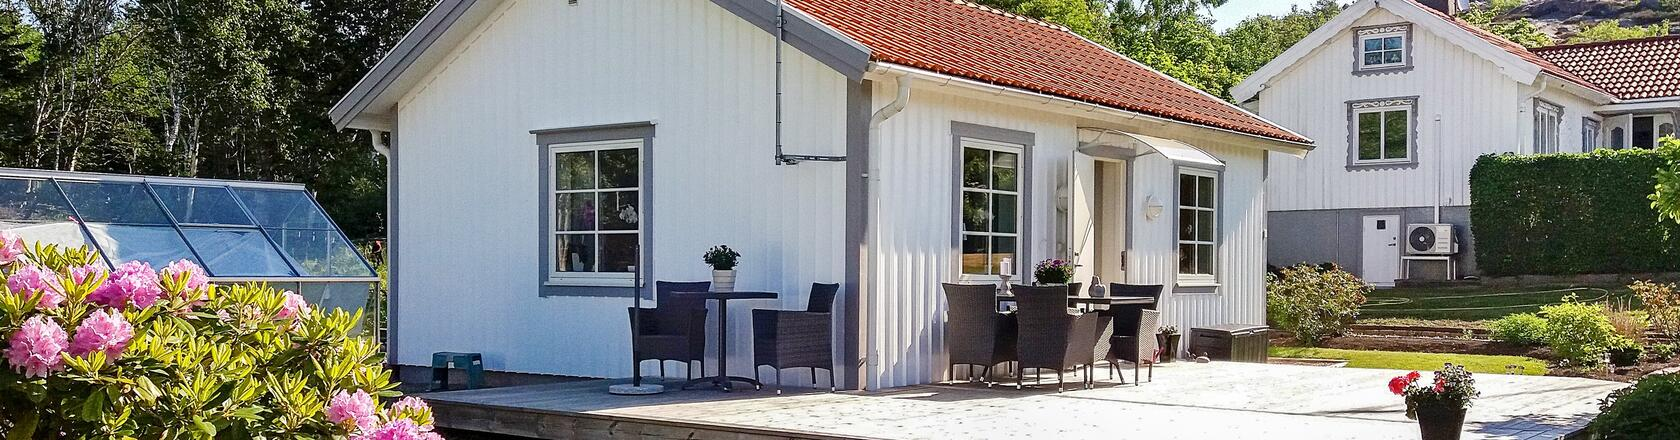 Skalhamn in Sweden - Rent a holiday home  with DanCenter